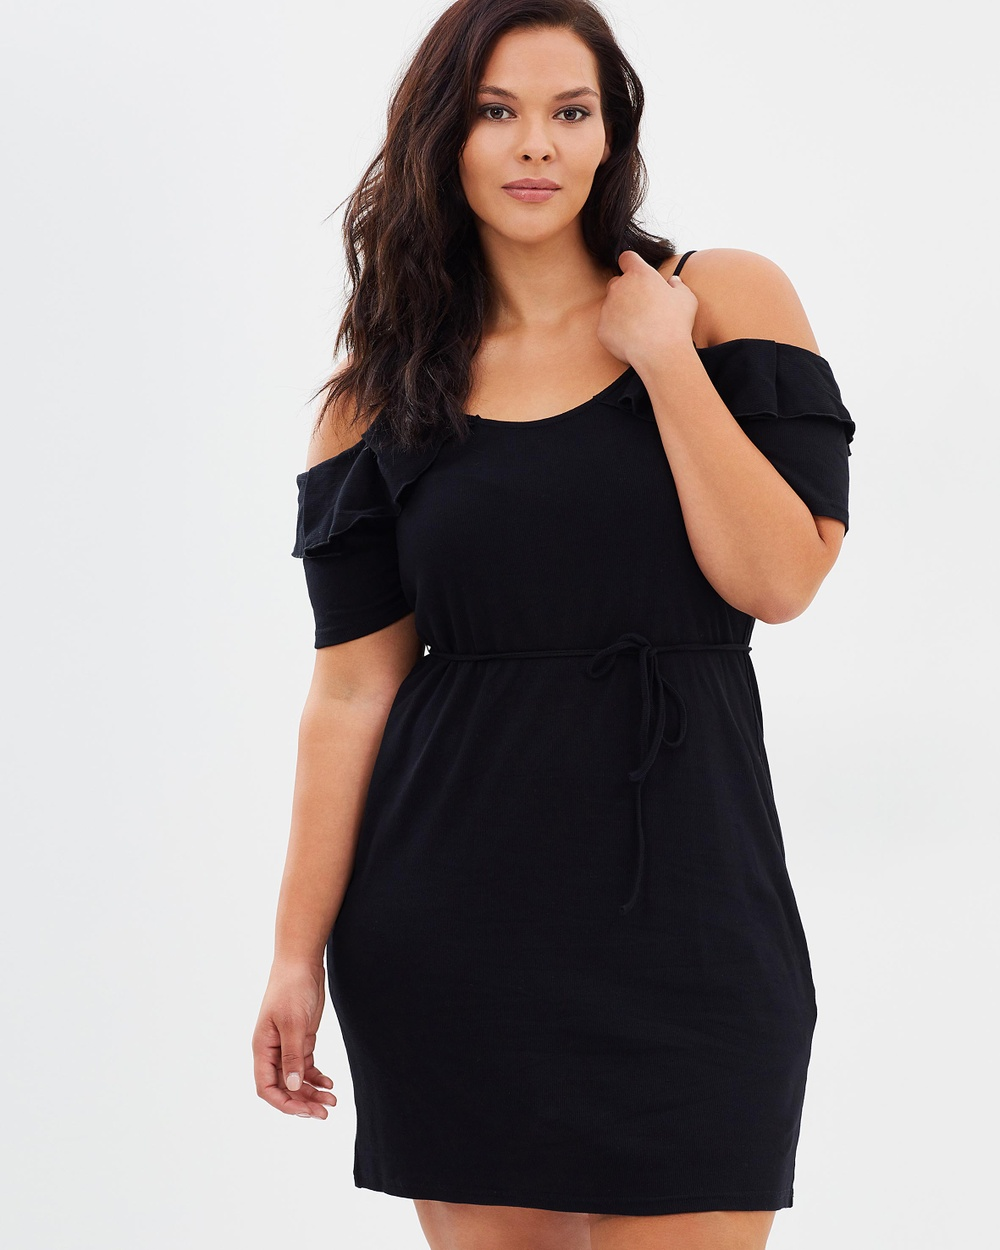 Atmos & Here Curvy ICONIC EXCLUSIVE Alissa Cold Shoulder Dress Bodycon Dresses Black ICONIC EXCLUSIVE Alissa Cold Shoulder Dress